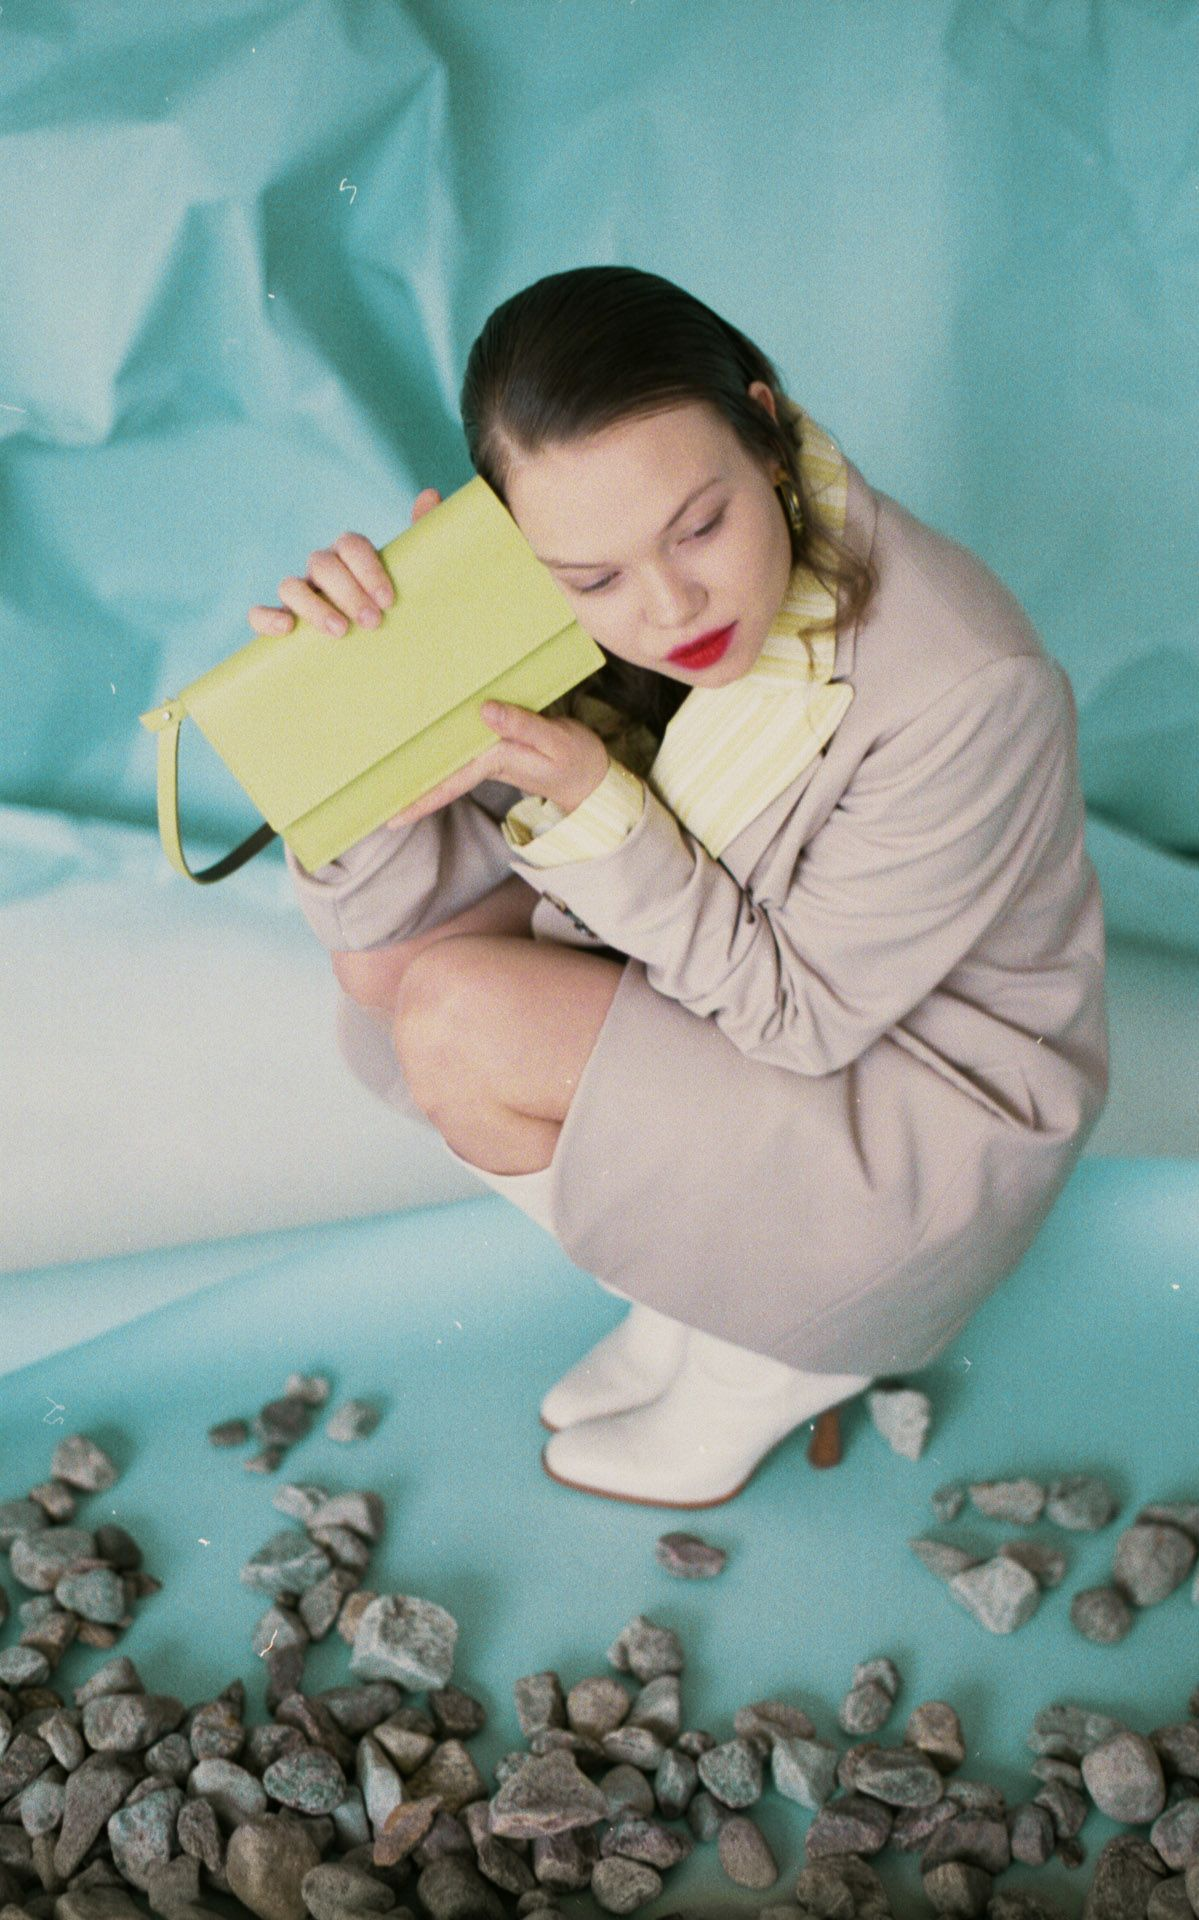 female model crouching on the ground surrounded by rocks wearing long beige coat and white heeled boots holding small light green leather bag against her face with light blue background for bouquet Montreal-brand Spring-Summer 2020 campaign with styling and artistic direction by Studio TB